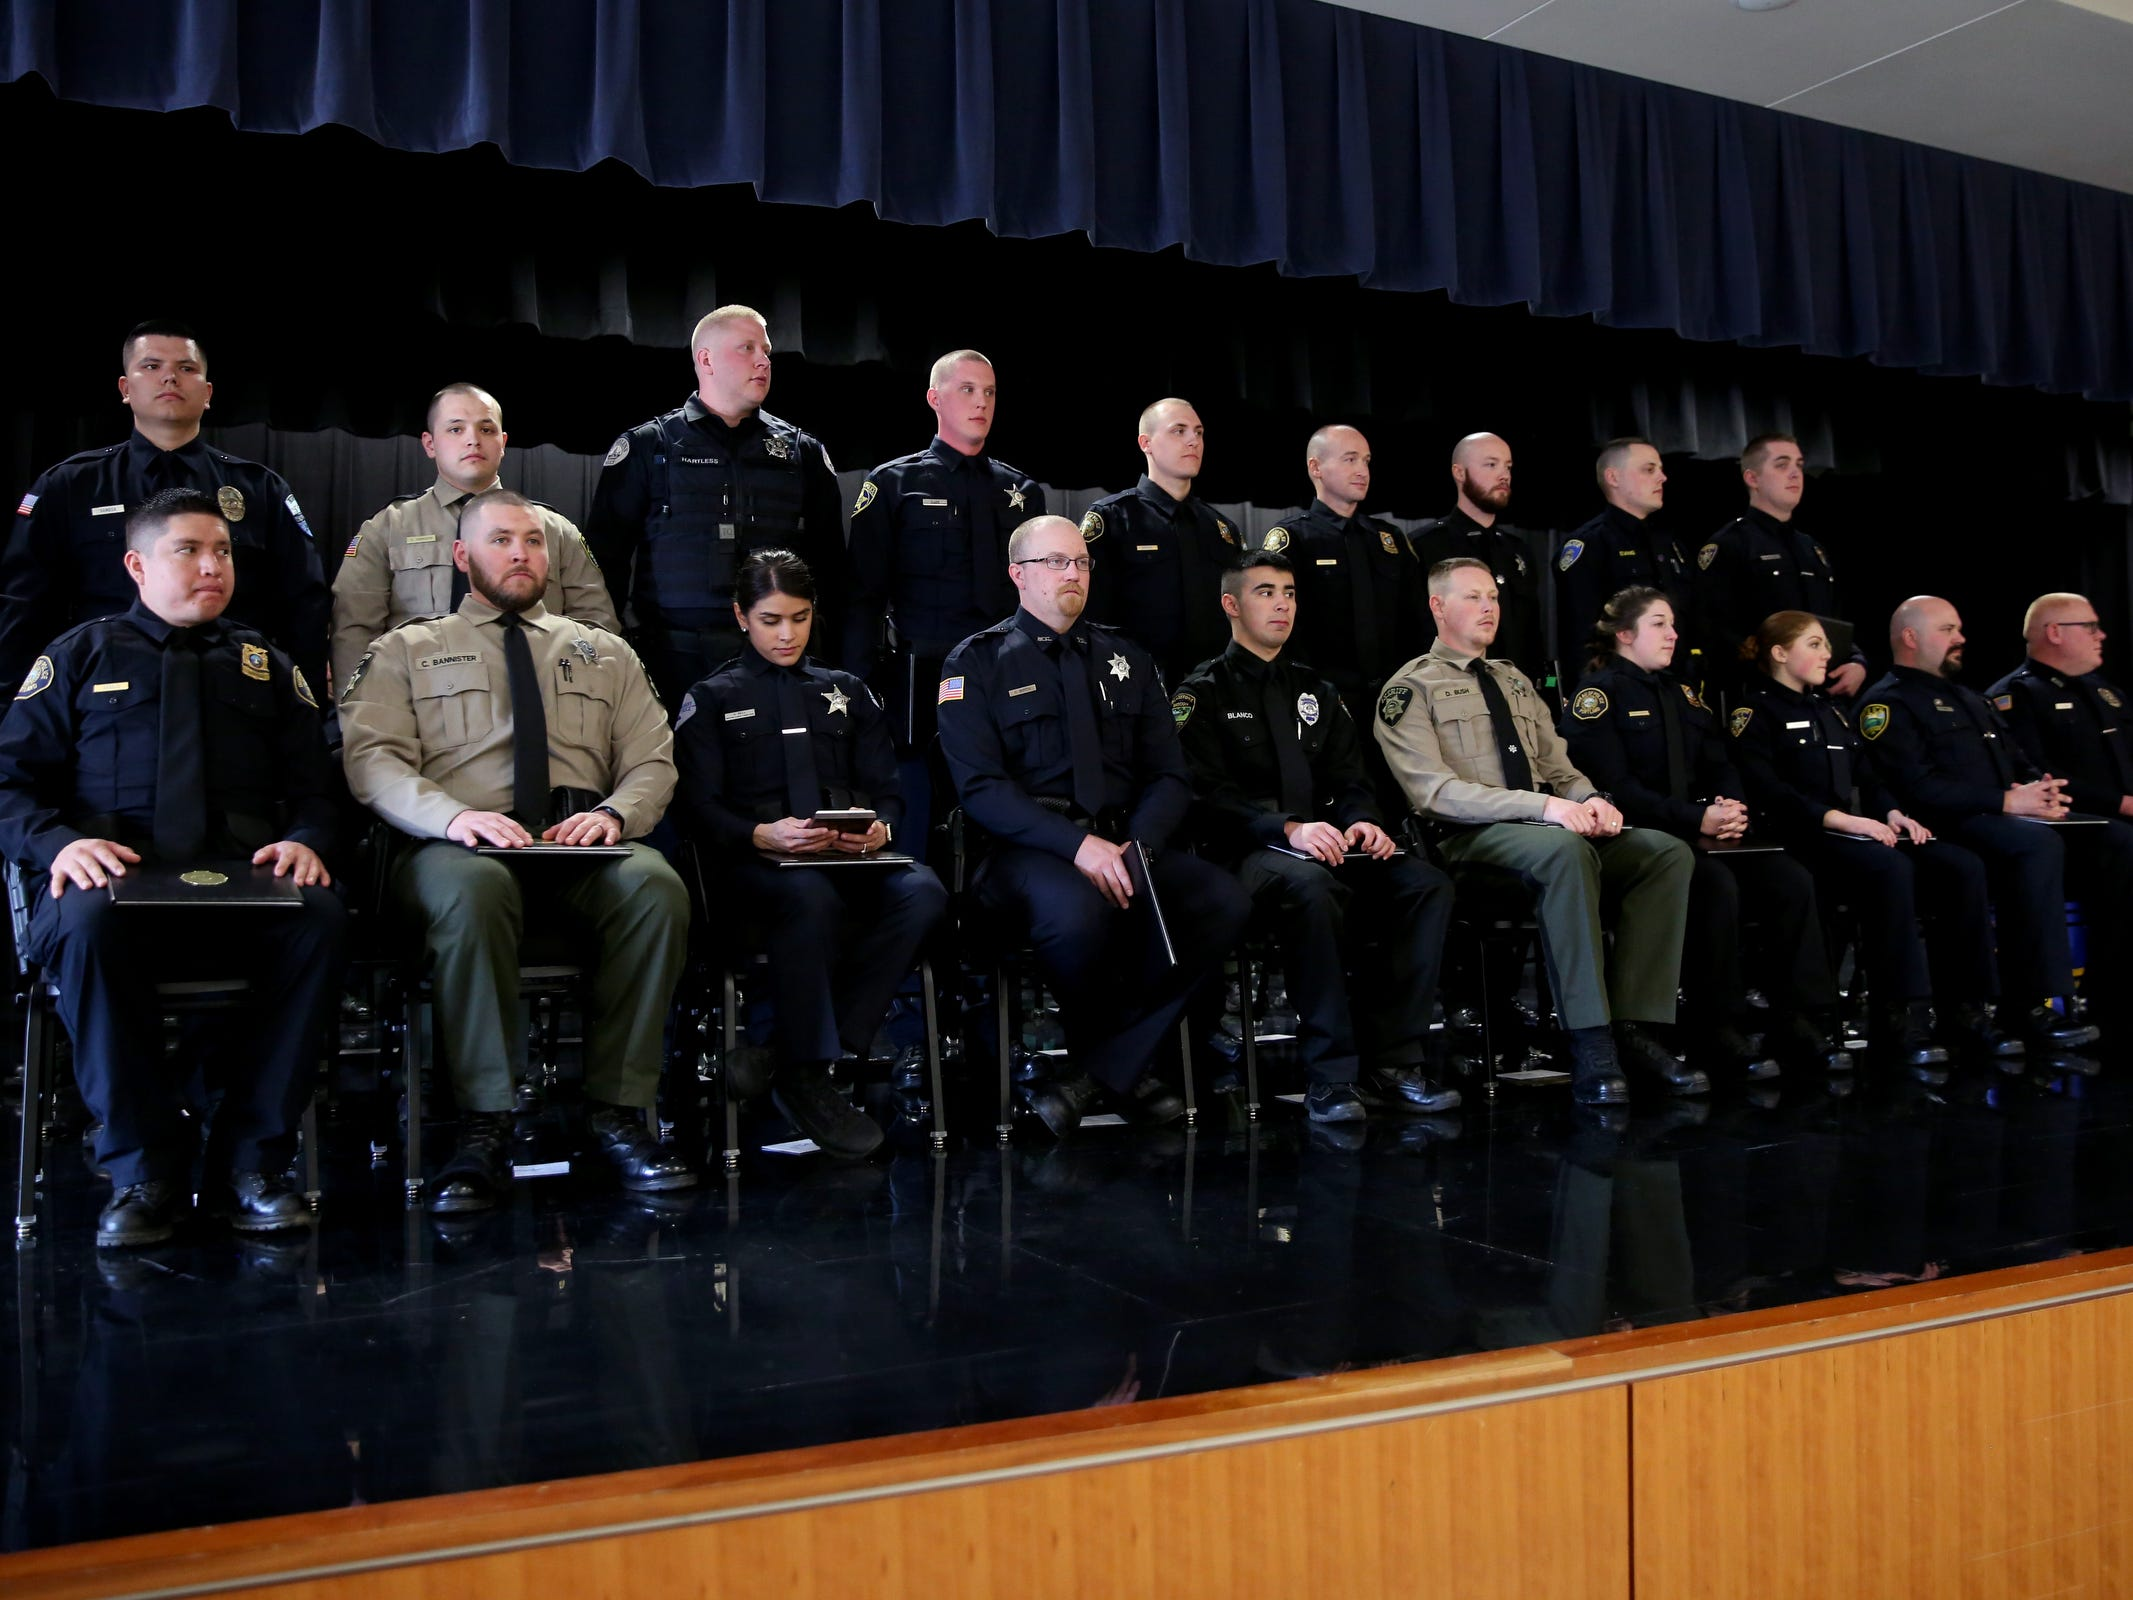 A Basic Police Class graduation ceremony at the Department of Public Safety Standards and Training in Salem on March 15, 2019.